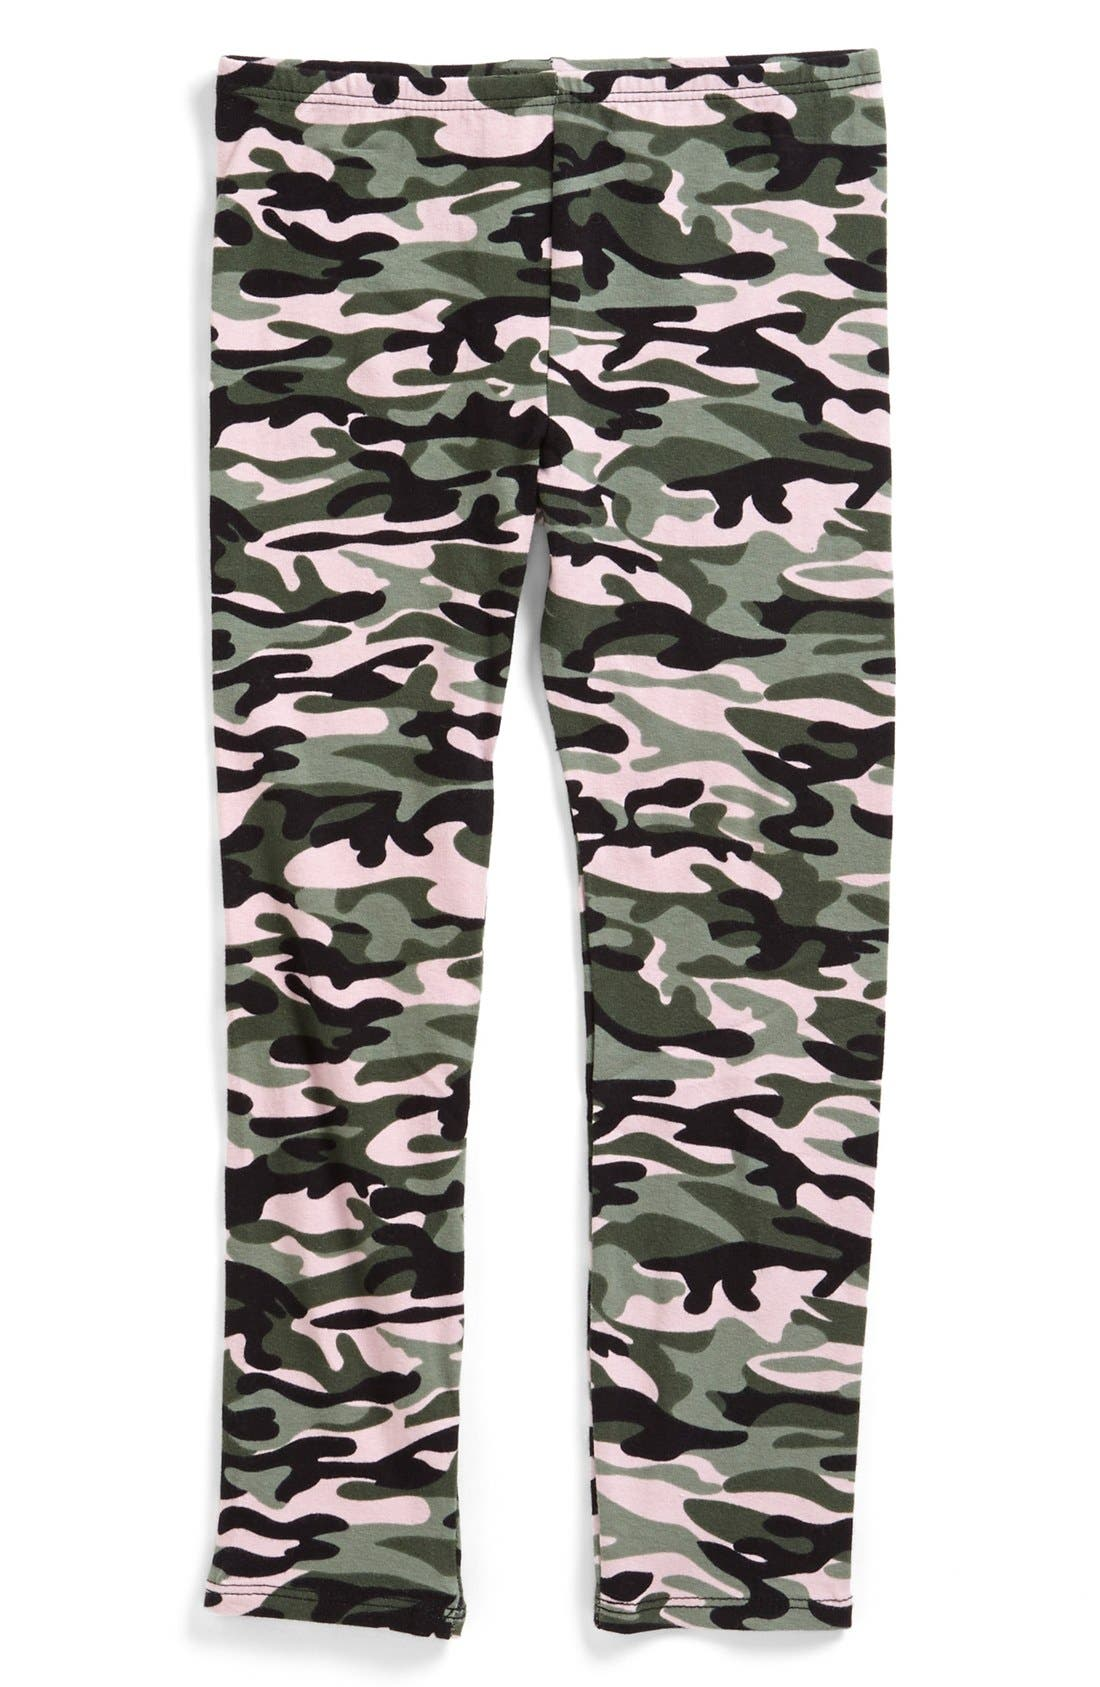 Alternate Image 1 Selected - Jenna & Jessie Camo Print Leggings (Little Girls)